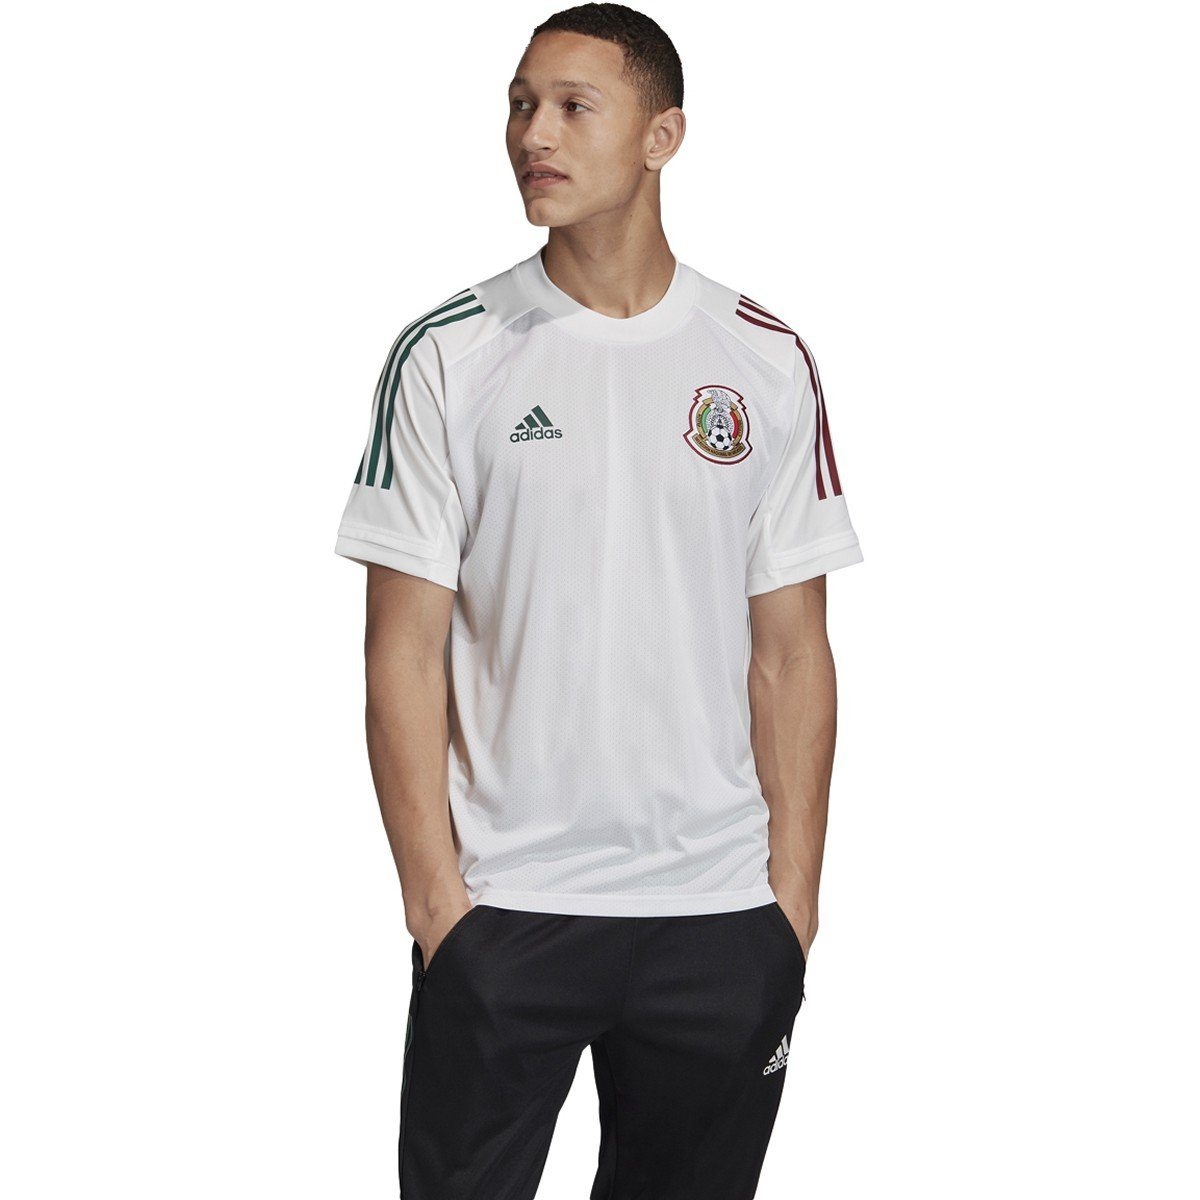 adidas 2020-21 Mexico Training Jersey | FH7854 Jersey Adidas Adult Small White